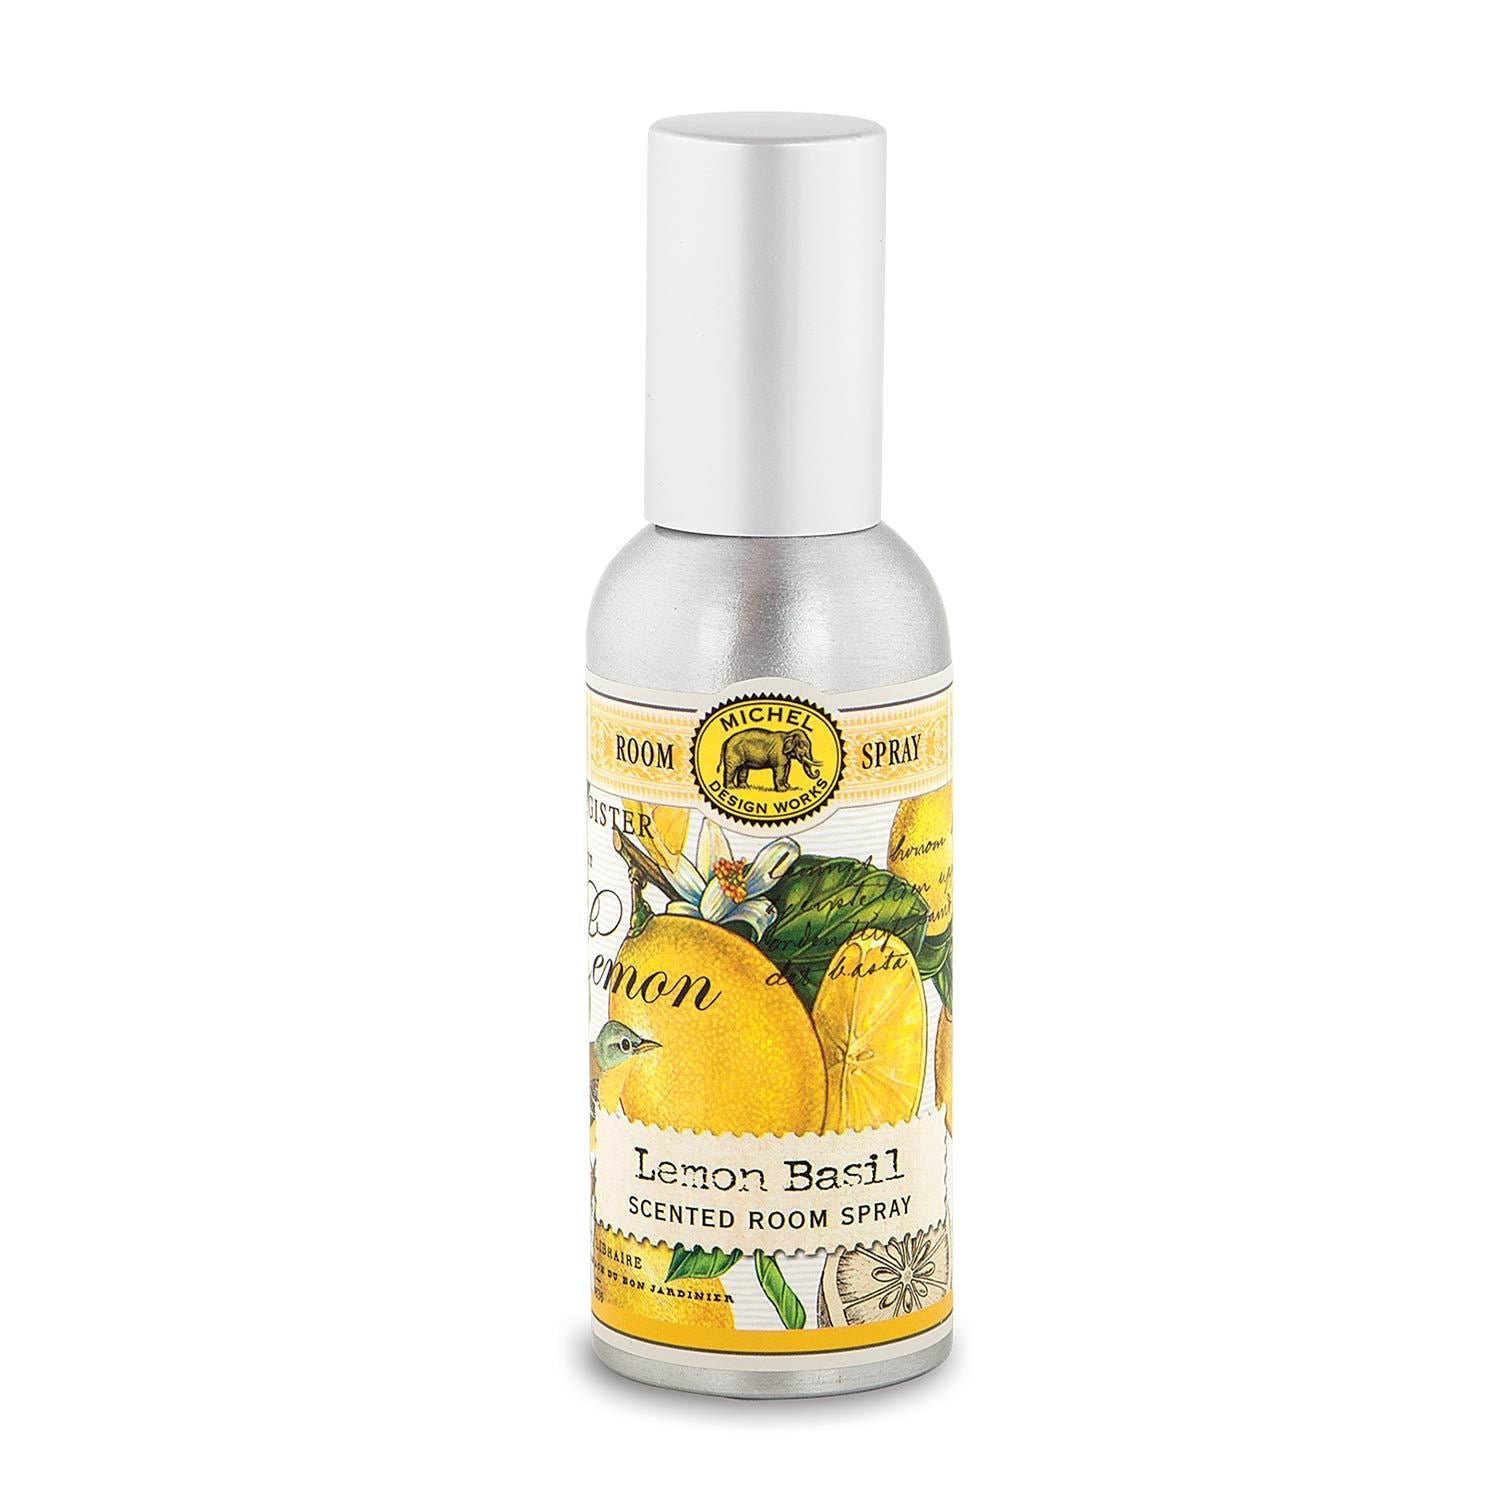 Lemon Basil - Scented Room Spray